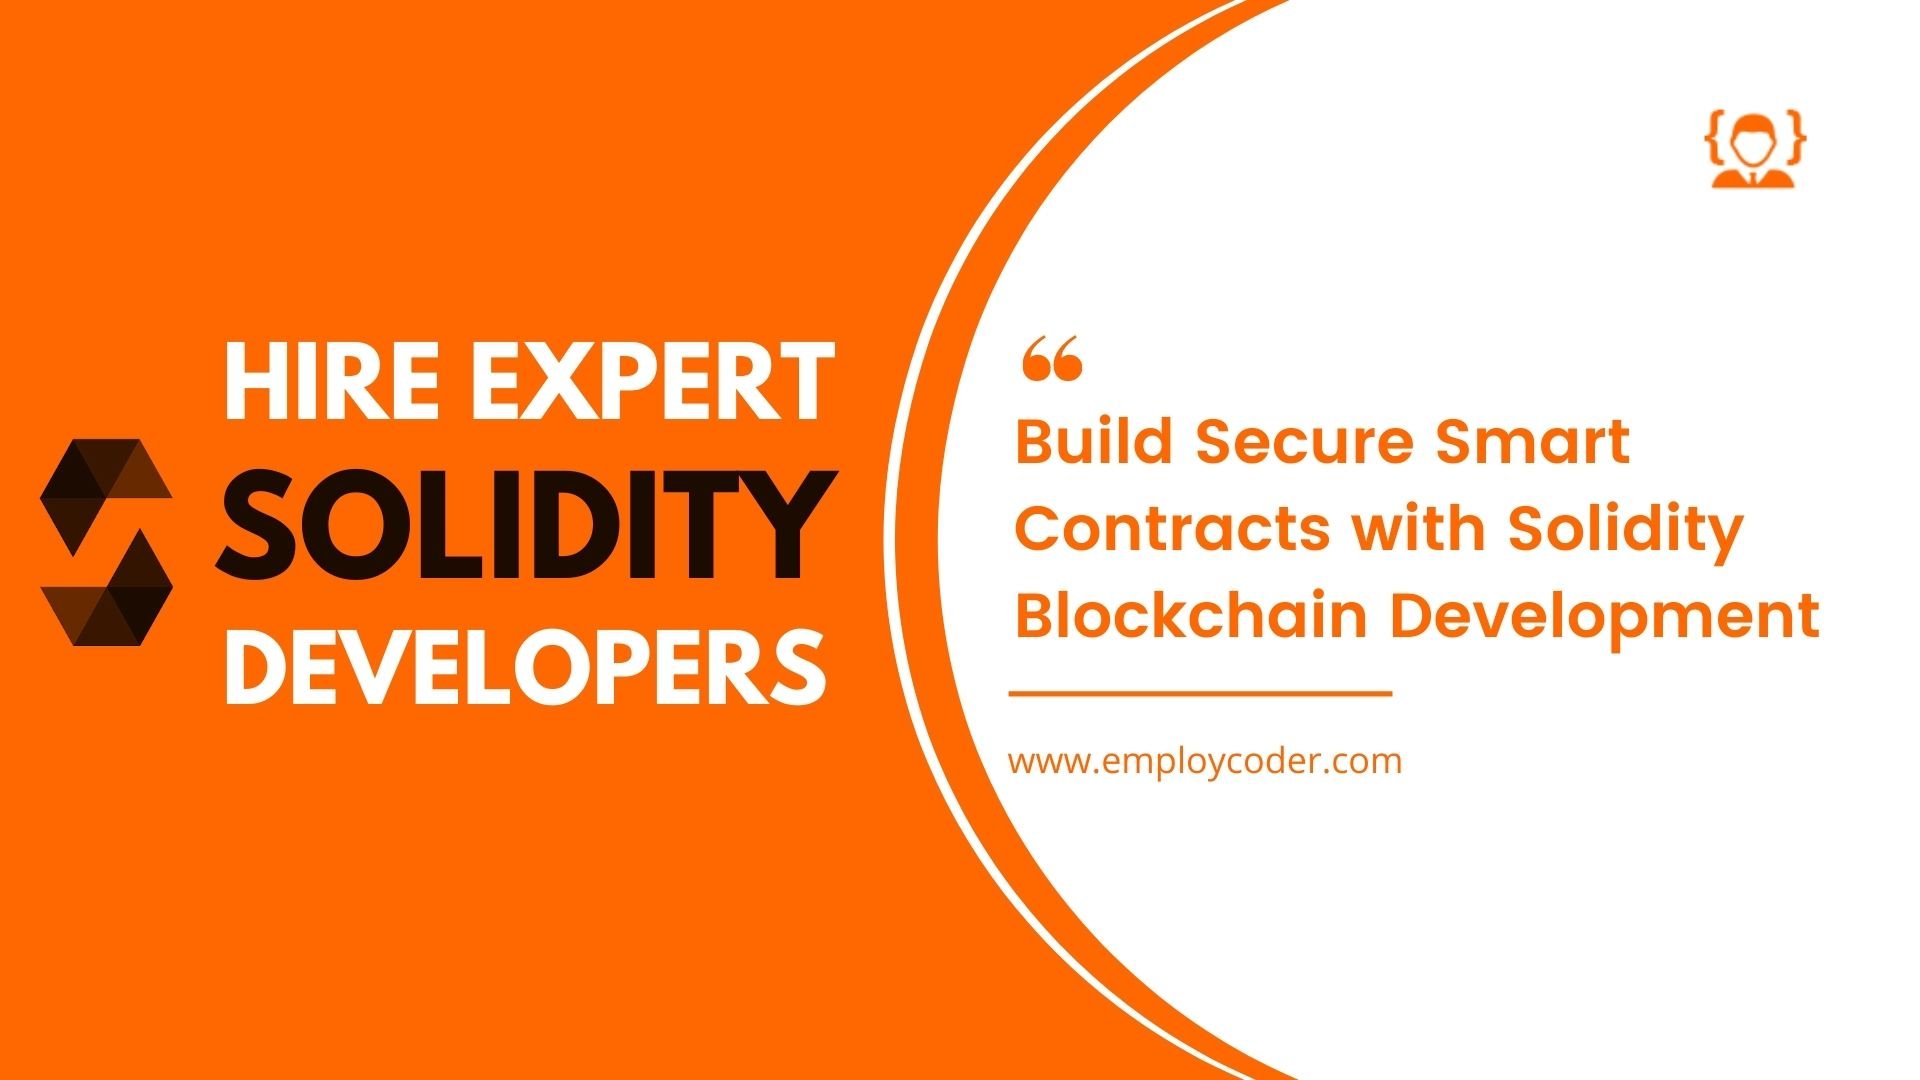 Hire Solidity Developers To Develop Secure Smart Contracts and Blockchain Applications